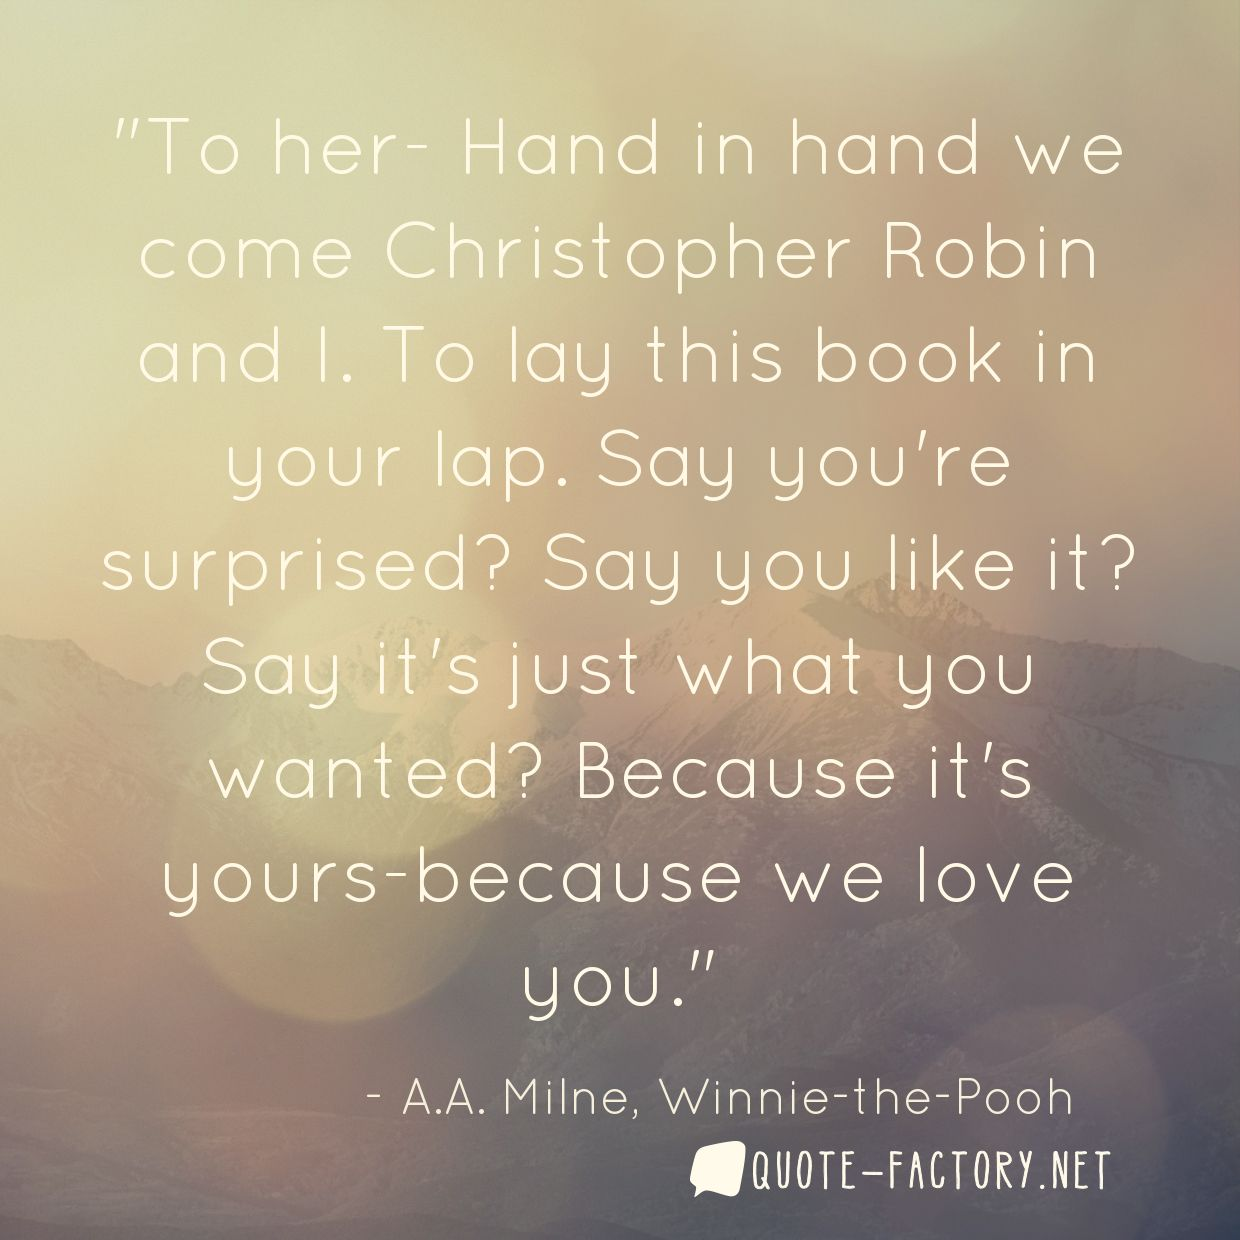 To her- Hand in hand we come Christopher Robin and I. To lay this book in your lap. Say you're surprised? Say you like it? Say it's just what you wanted? Because it's yours-because we love you.